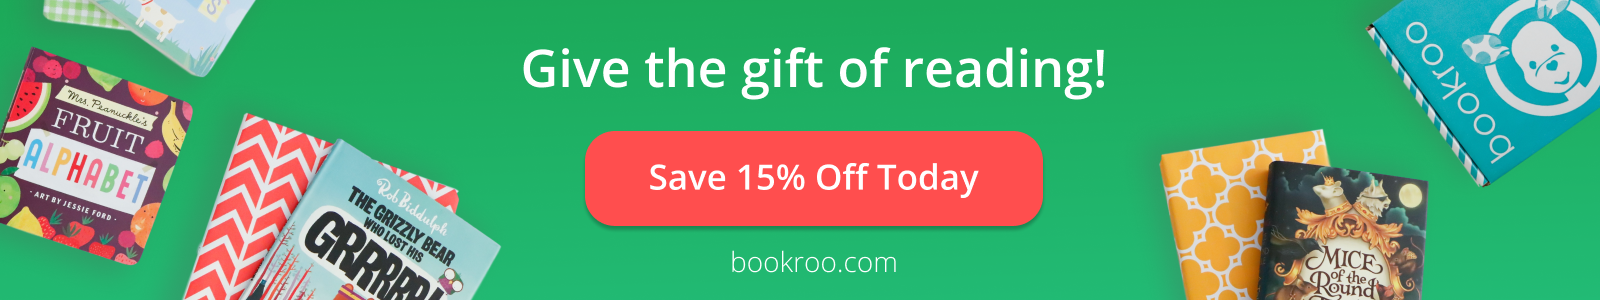 Give the gift of reading! Save 15% off today! bookroo.com